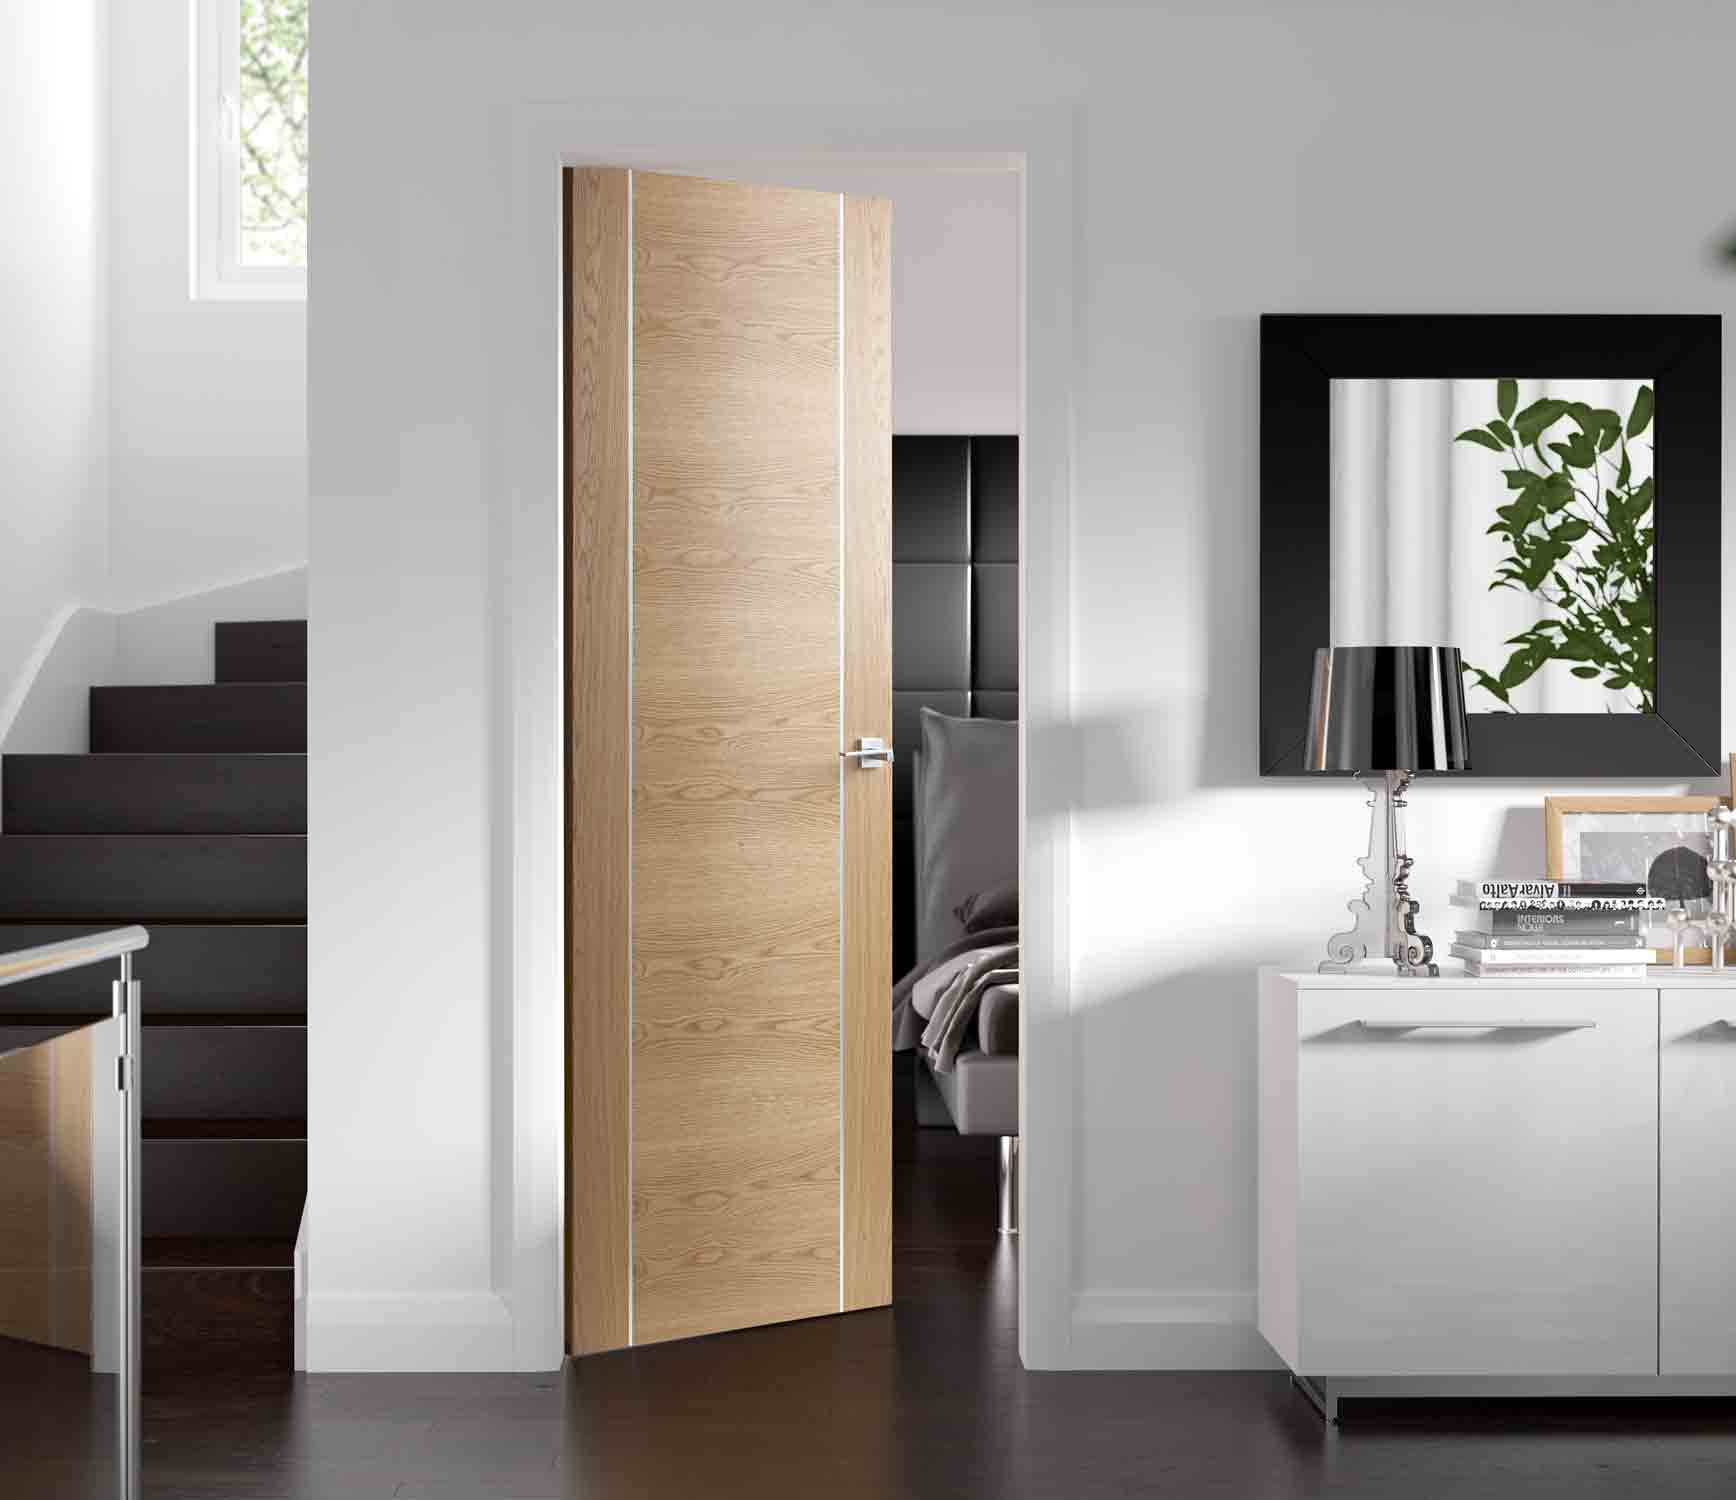 Bedroom Door: Forli Oak Inlaid PVC